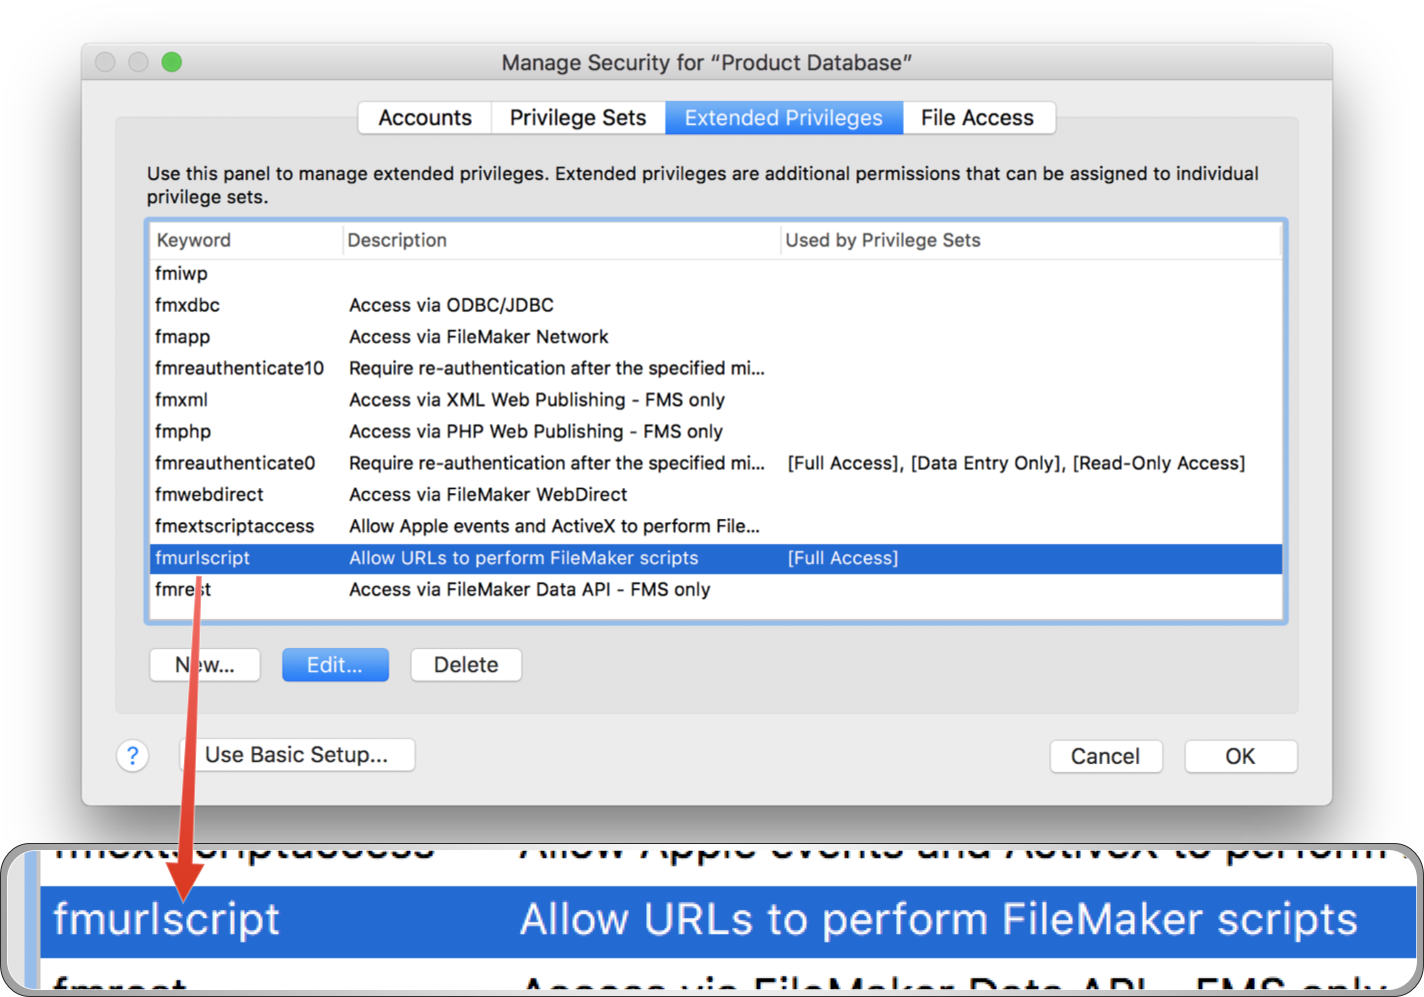 OmniGraffle & FileMaker: fmurlscript